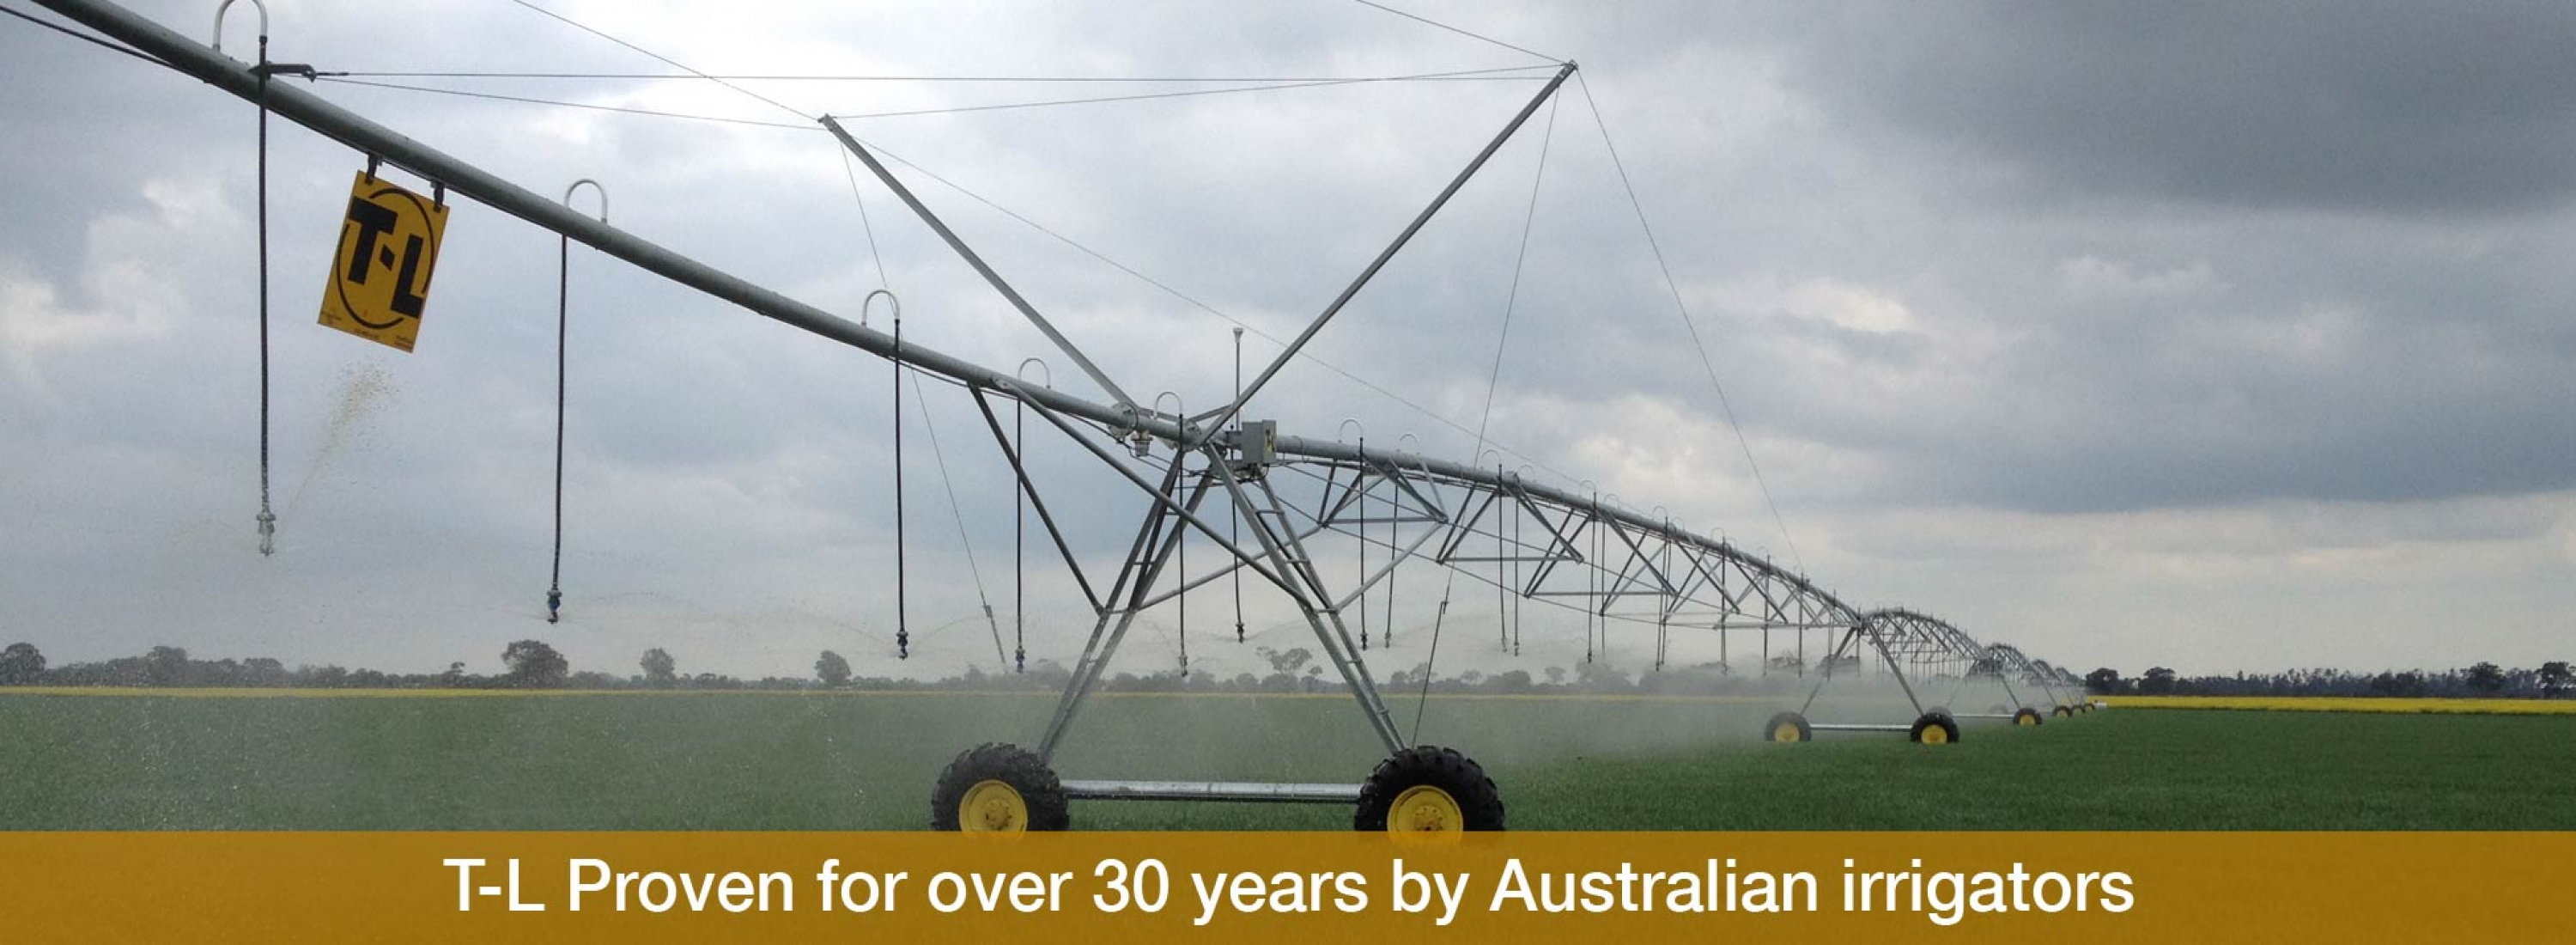 Eagle i T-L Proven for over 30 years by Australian irrigators